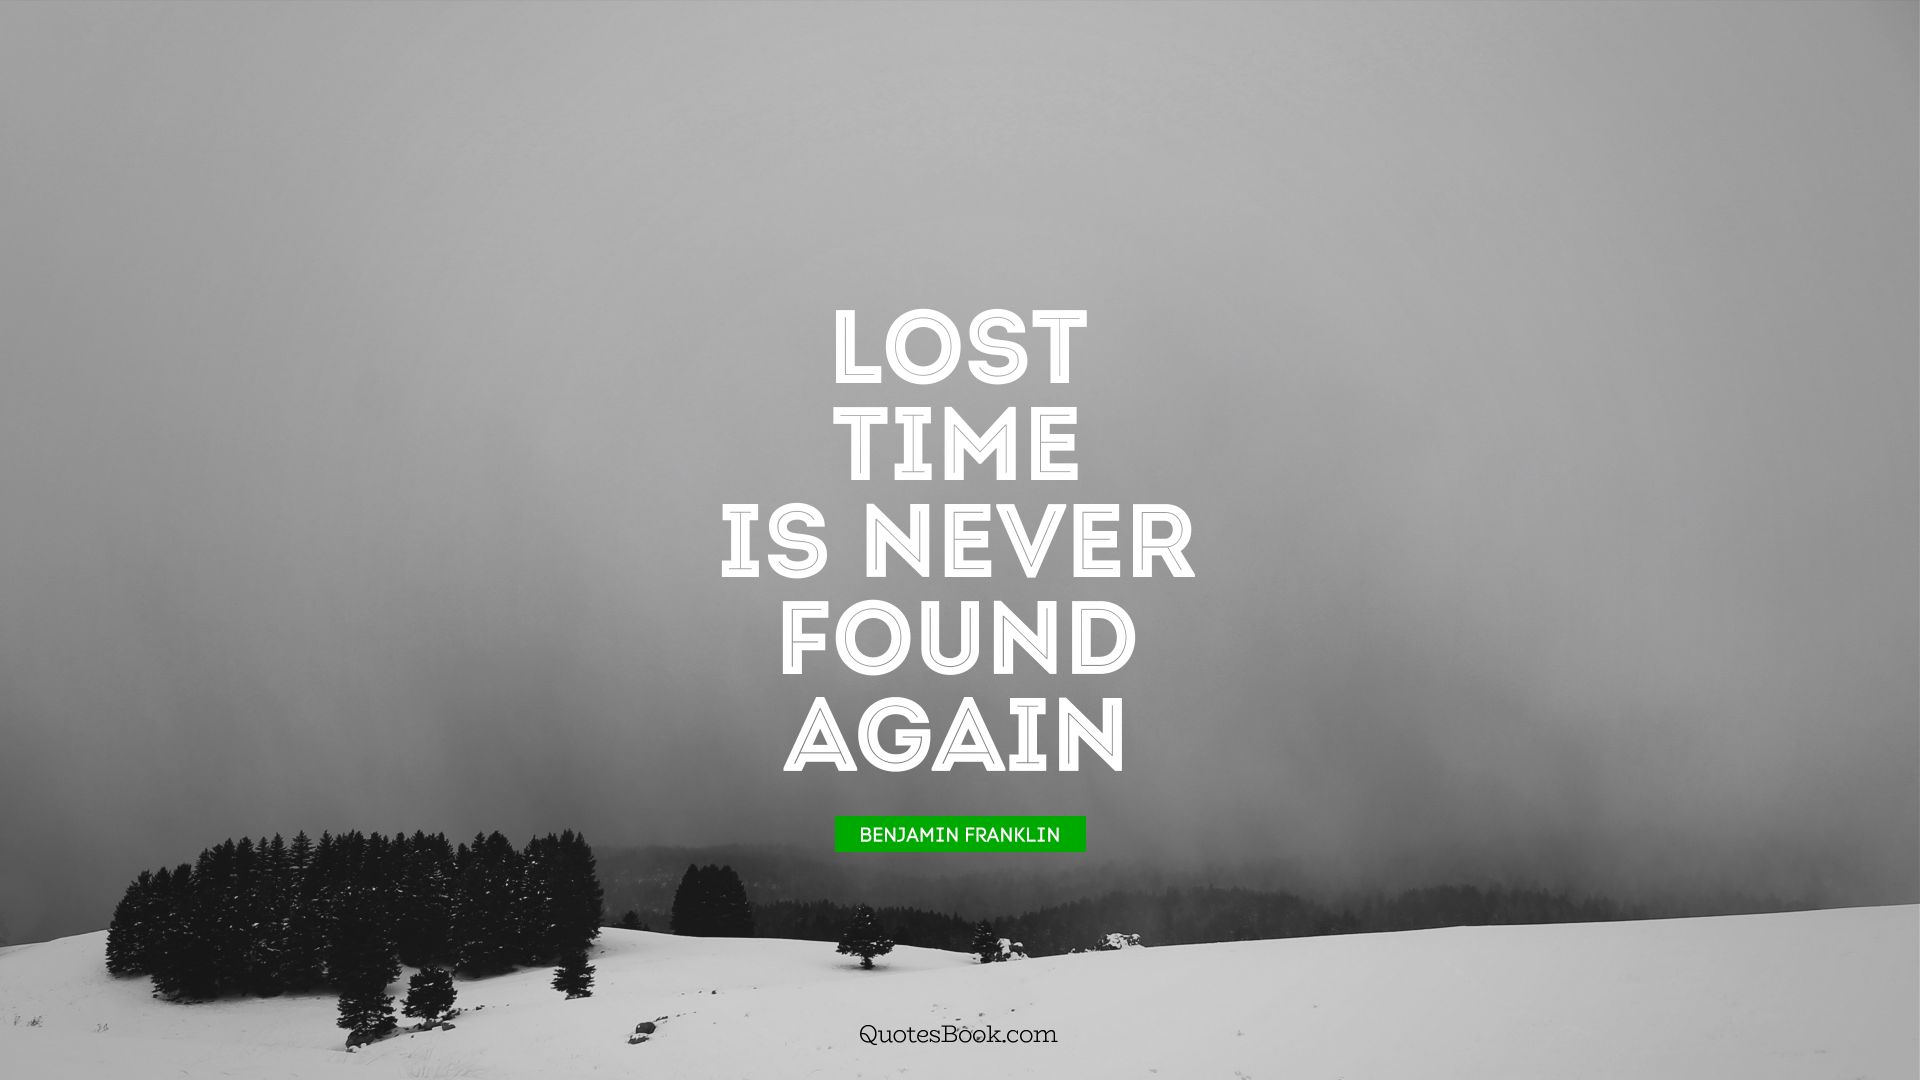 Lost time is never found again. - Quote by Benjamin Franklin